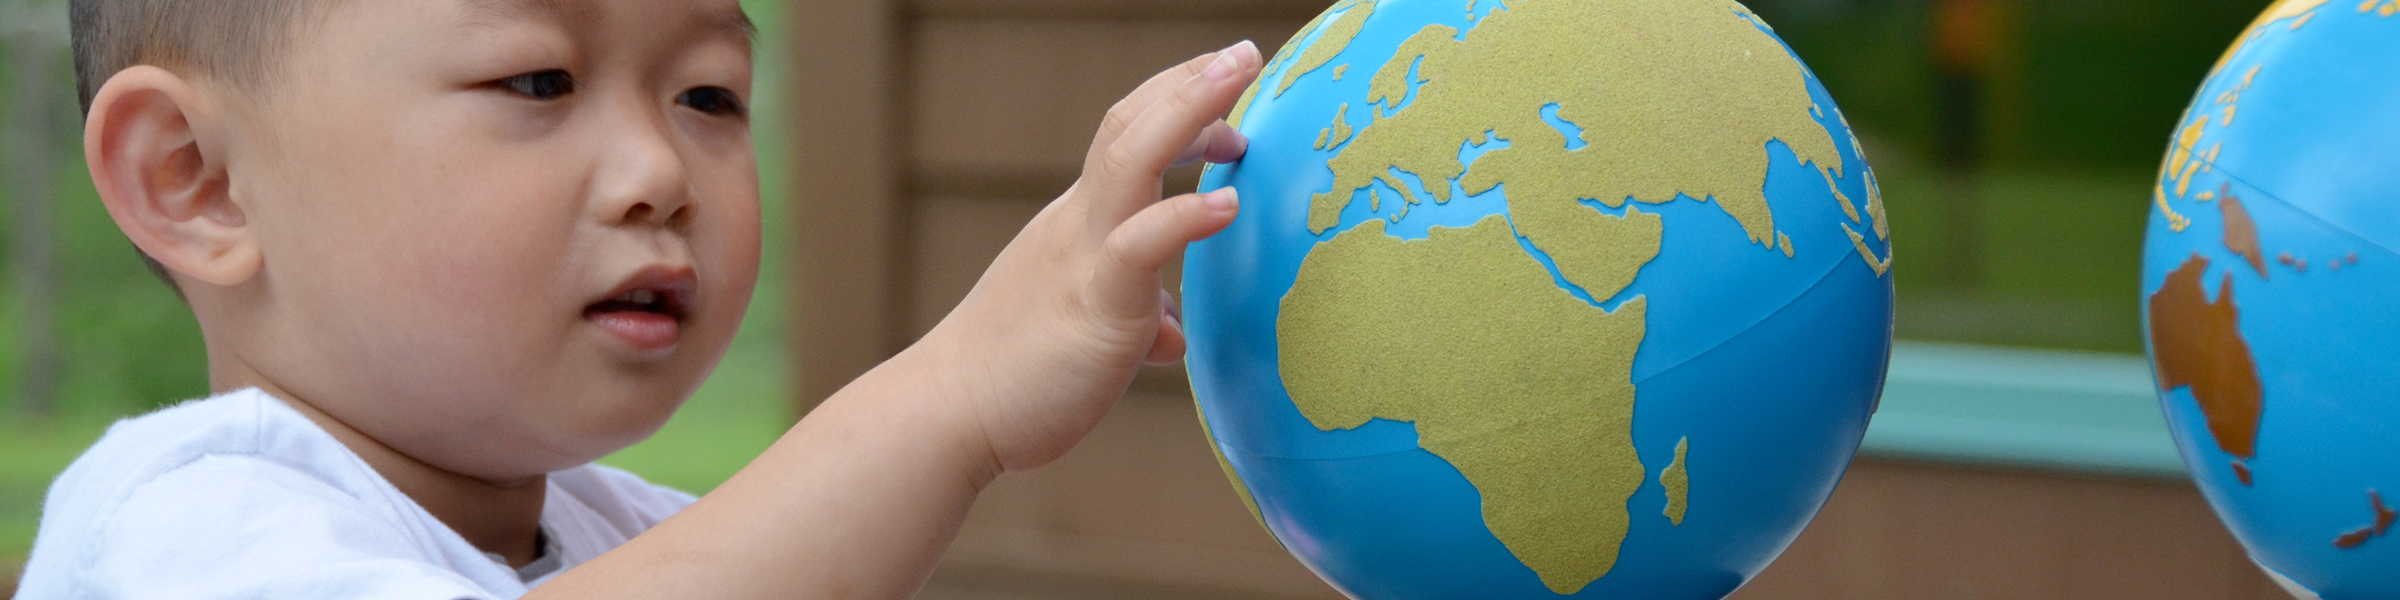 Find Your Country Montessori Sandpaper Globe